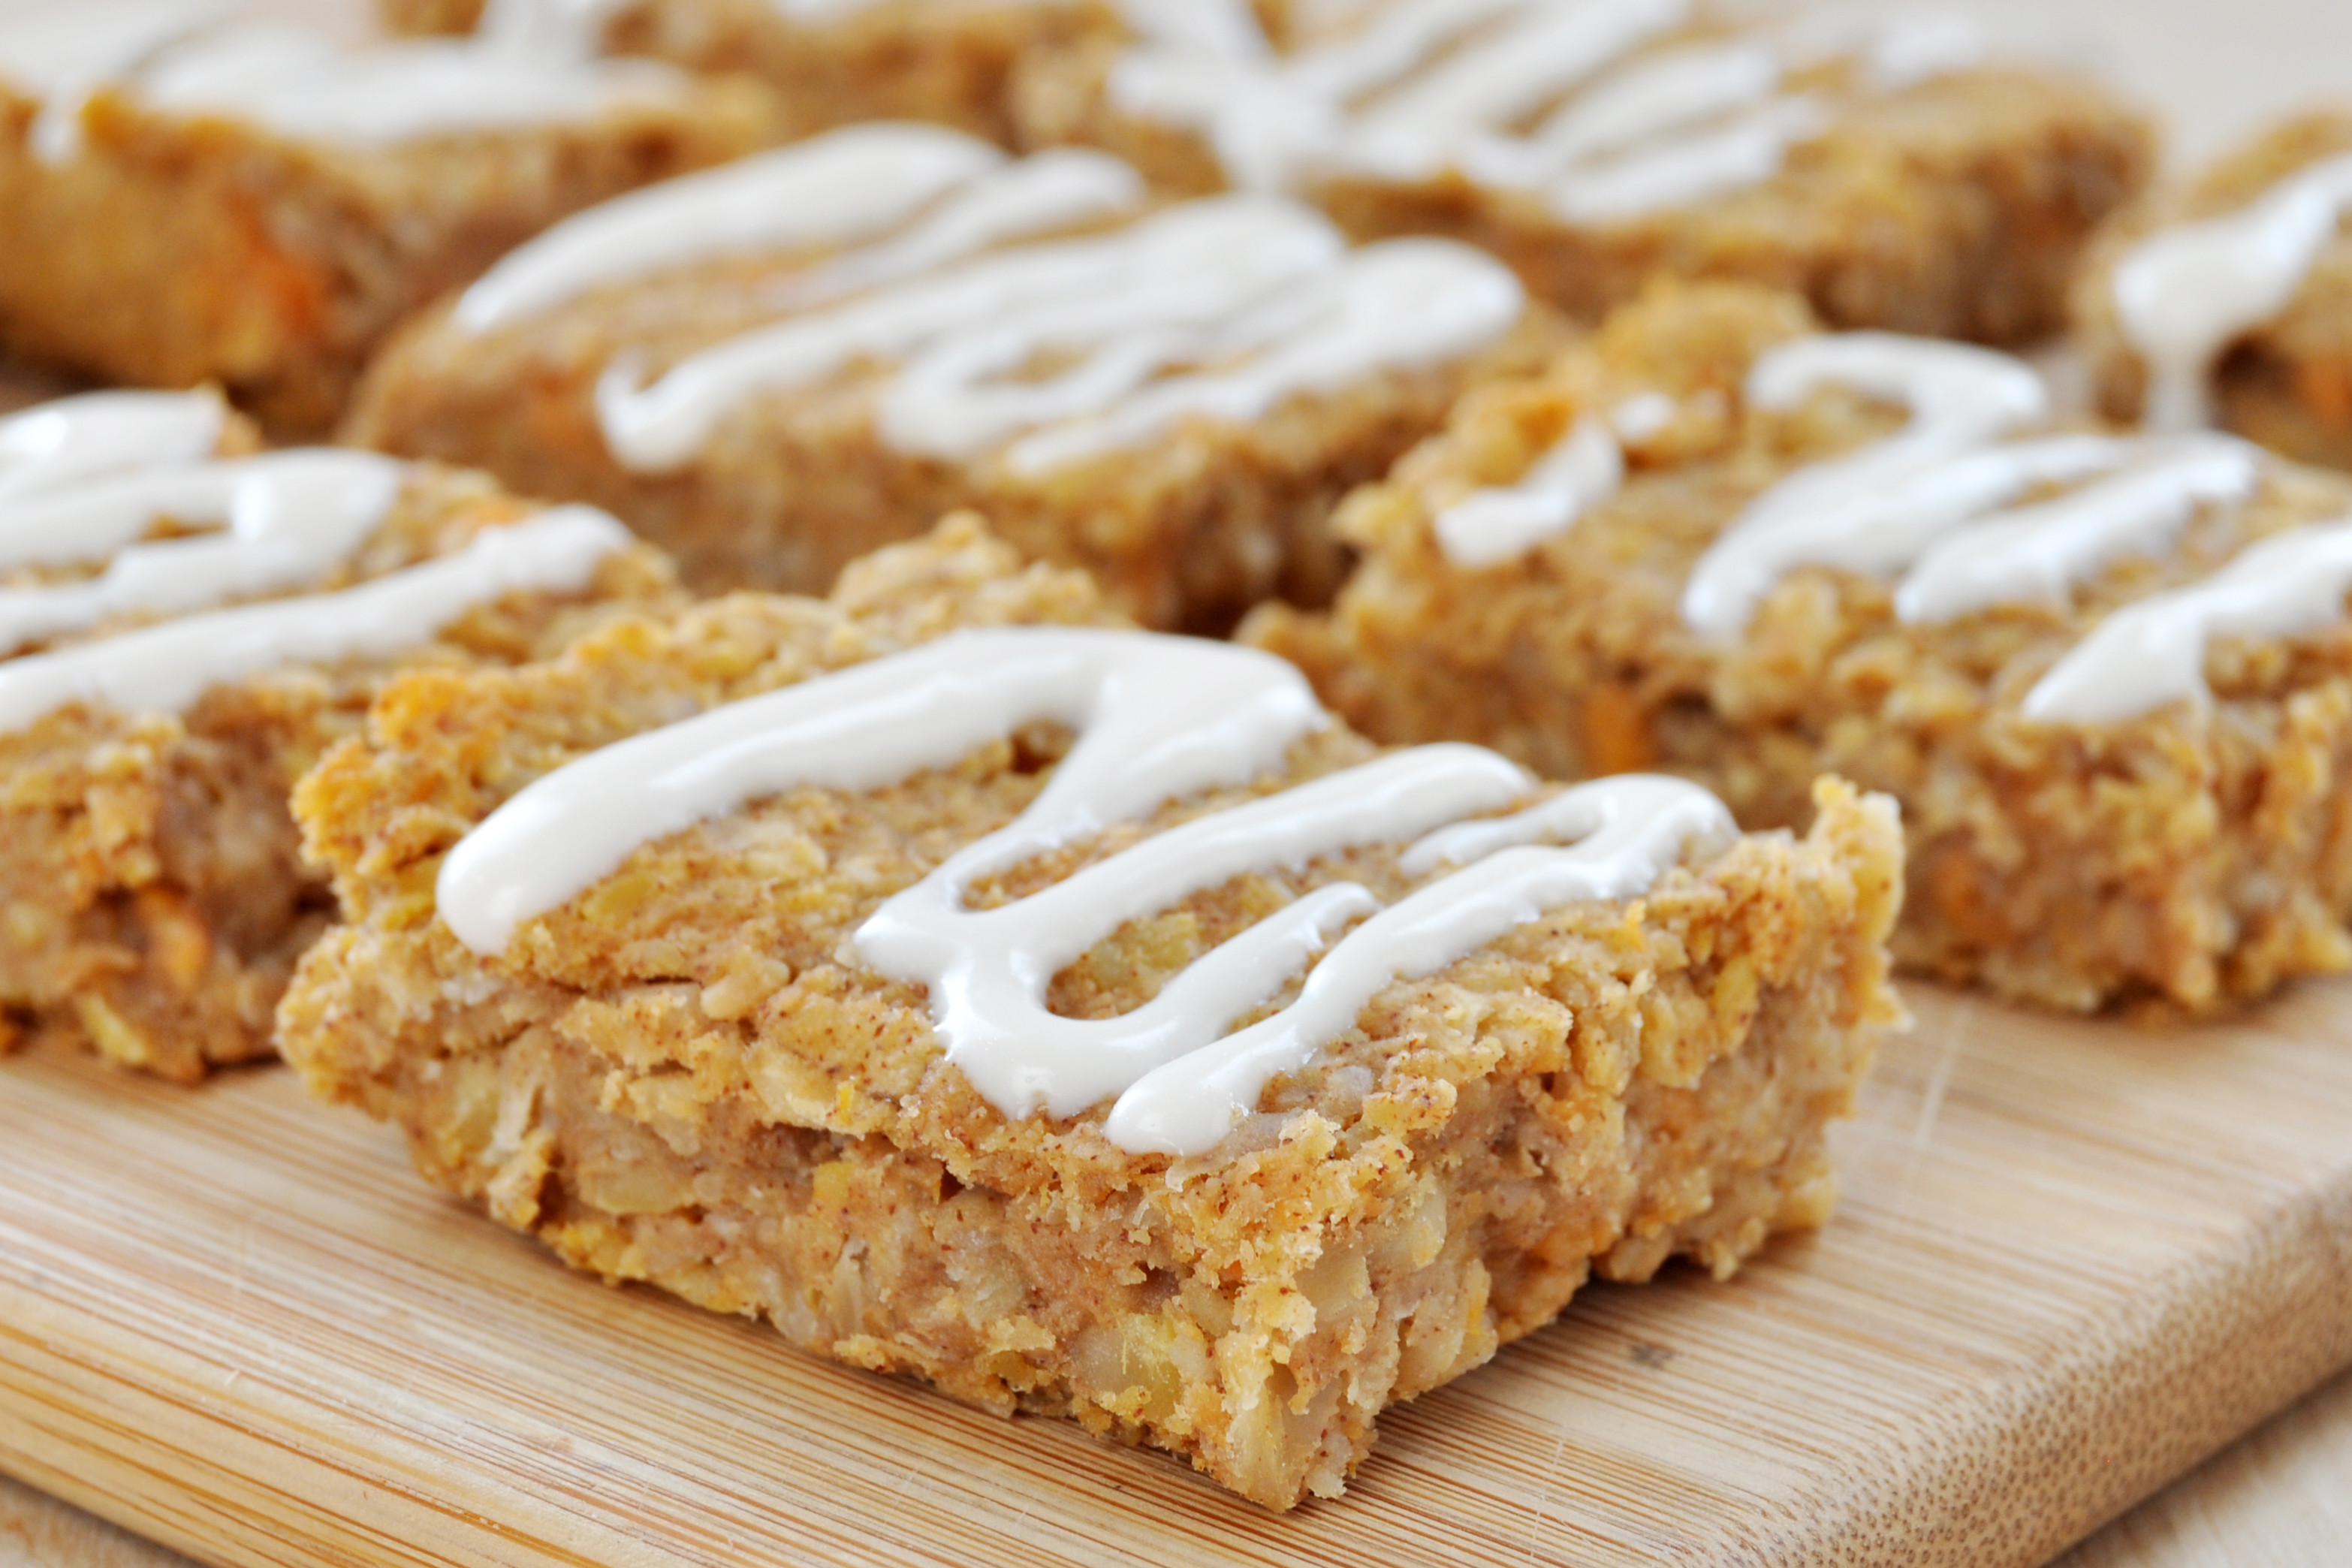 Healthy Snacks With Cream Cheese  Sweet Potato Snack Bars with Cream Cheese Frosting Vegan